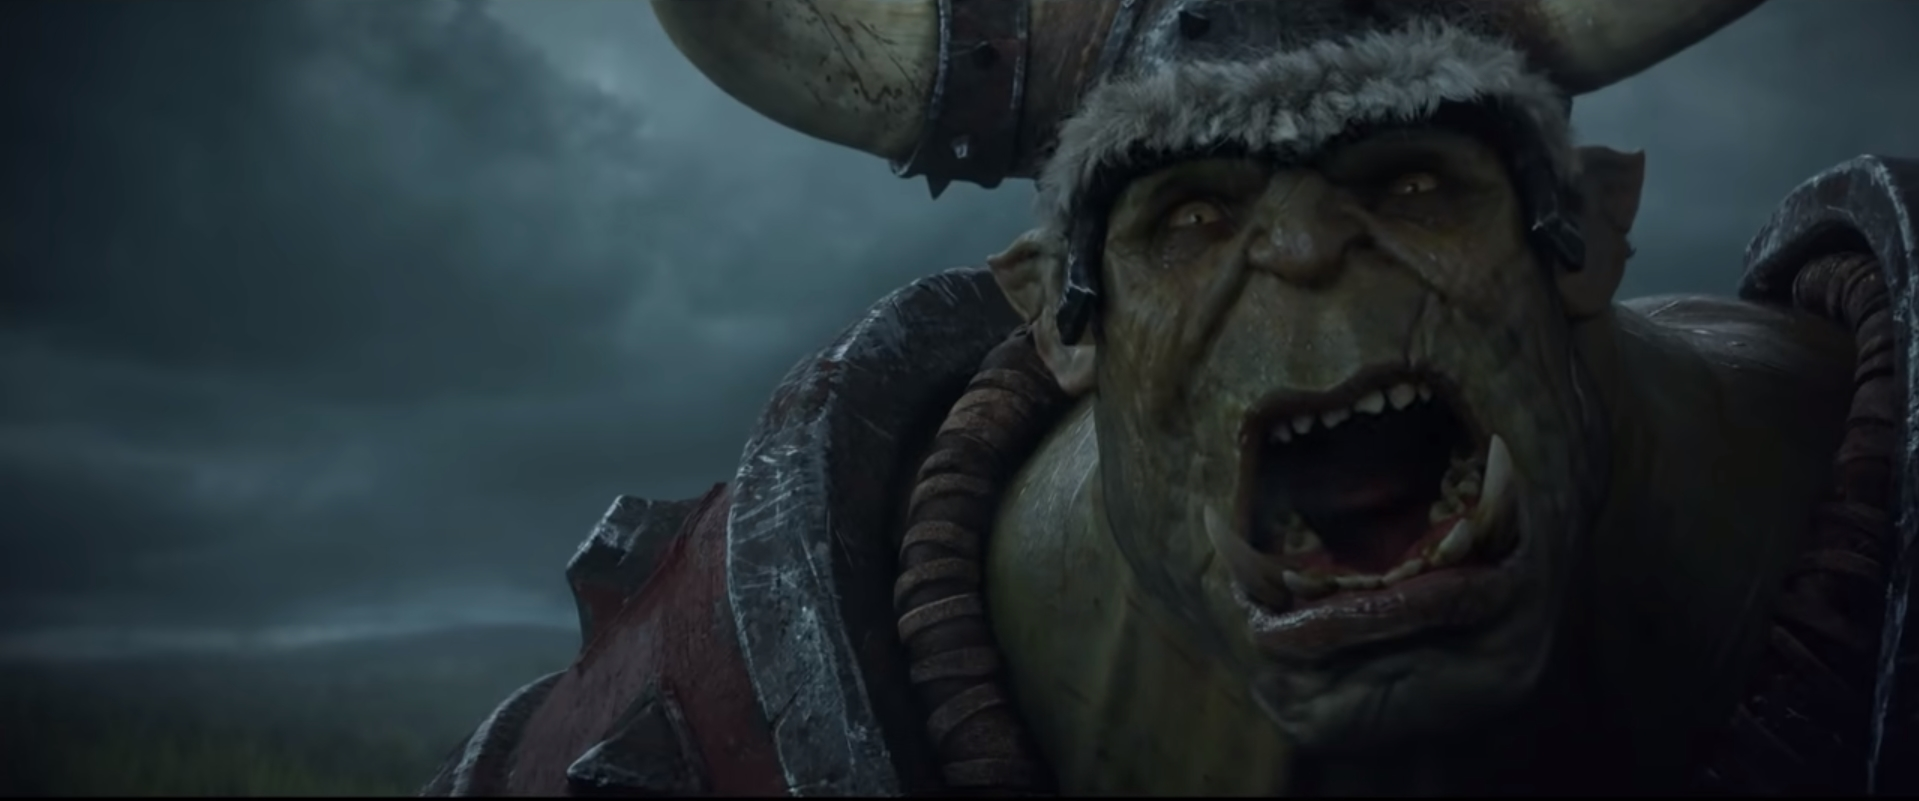 Warcraft III: Reforged Releases With Multiple Issues, Including Severe Lag